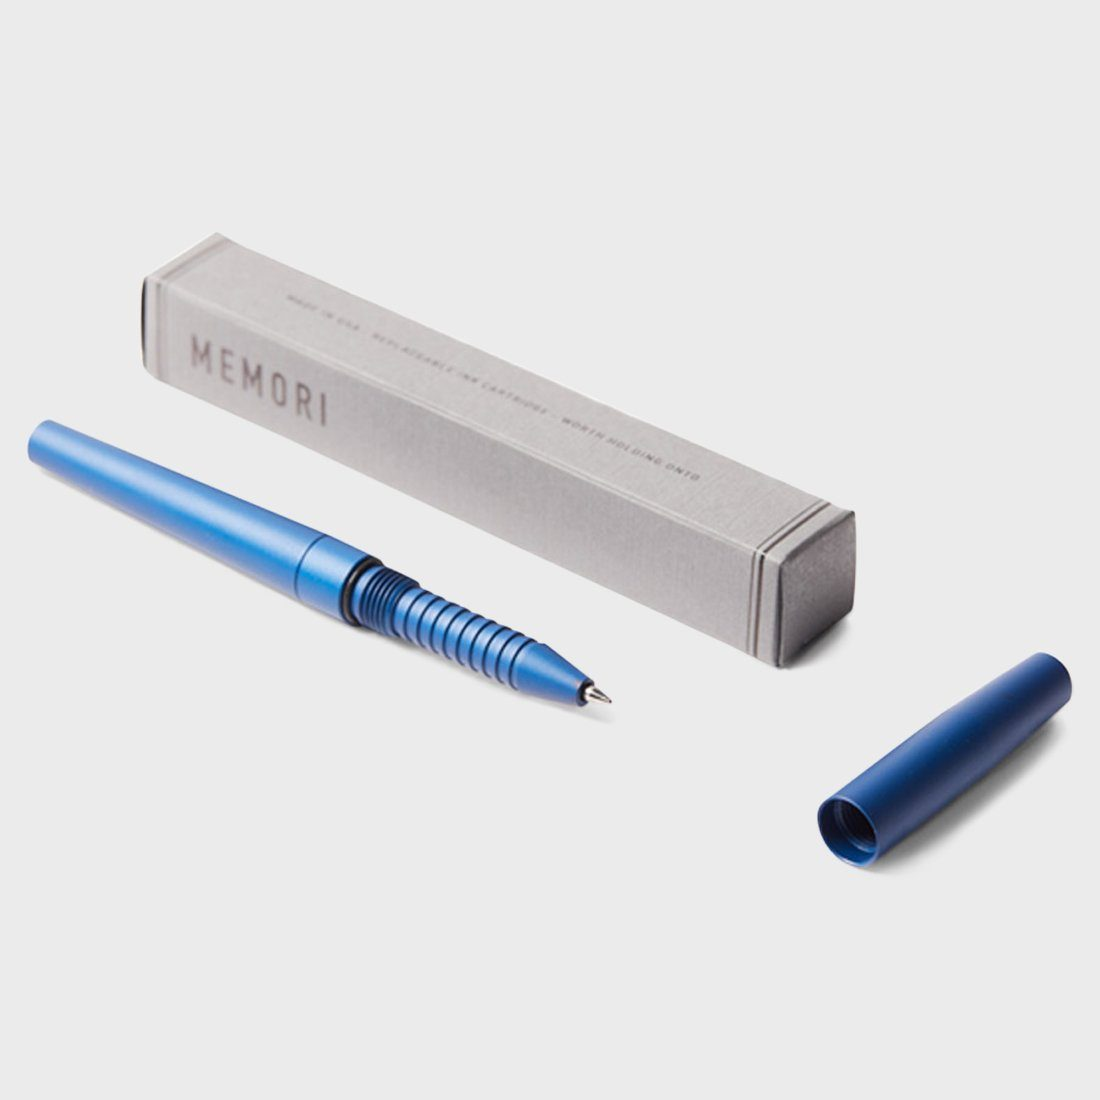 Tanner Goods Memori Pen Blue